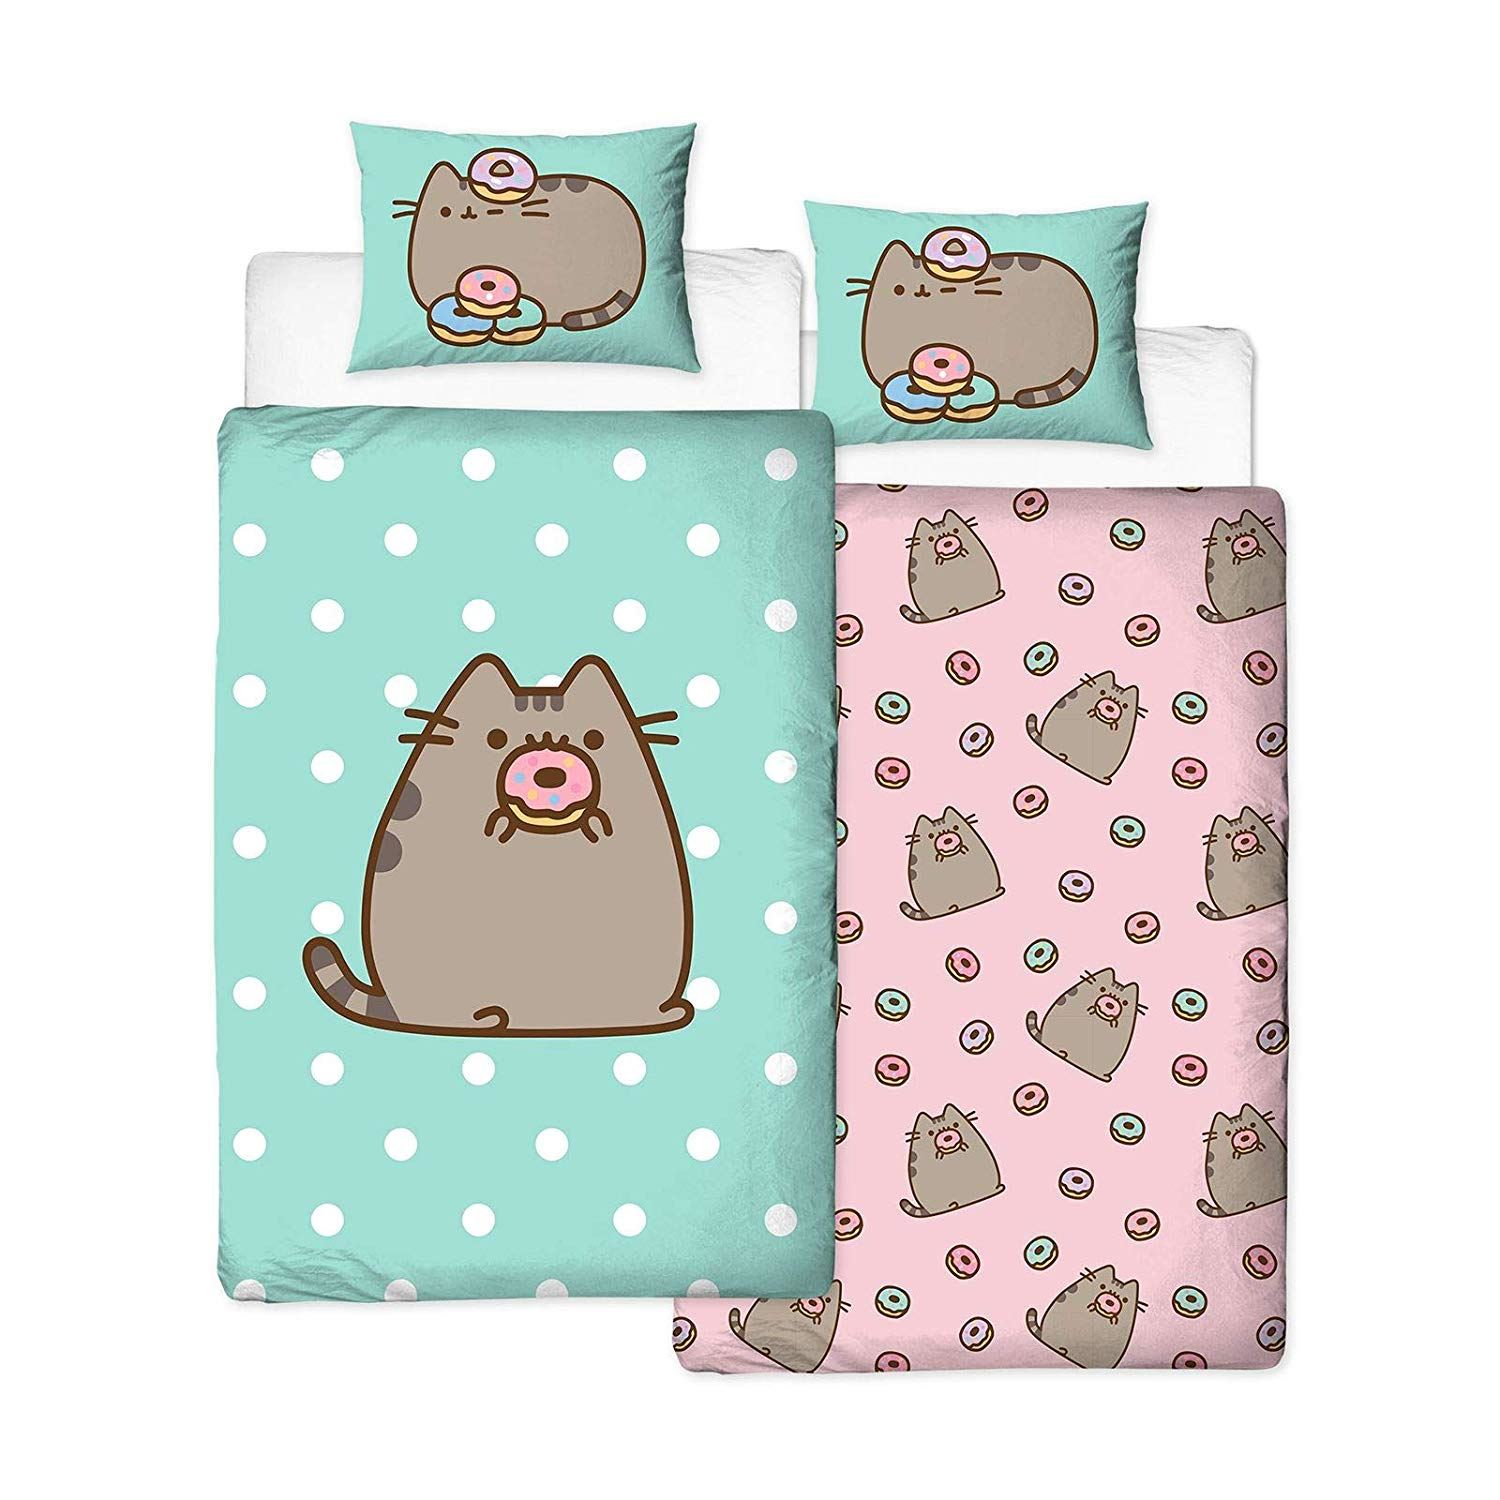 Pusheen-Doughnut-Single-Double-Reversible-Duvet-Cover-Bedding-Set thumbnail 8